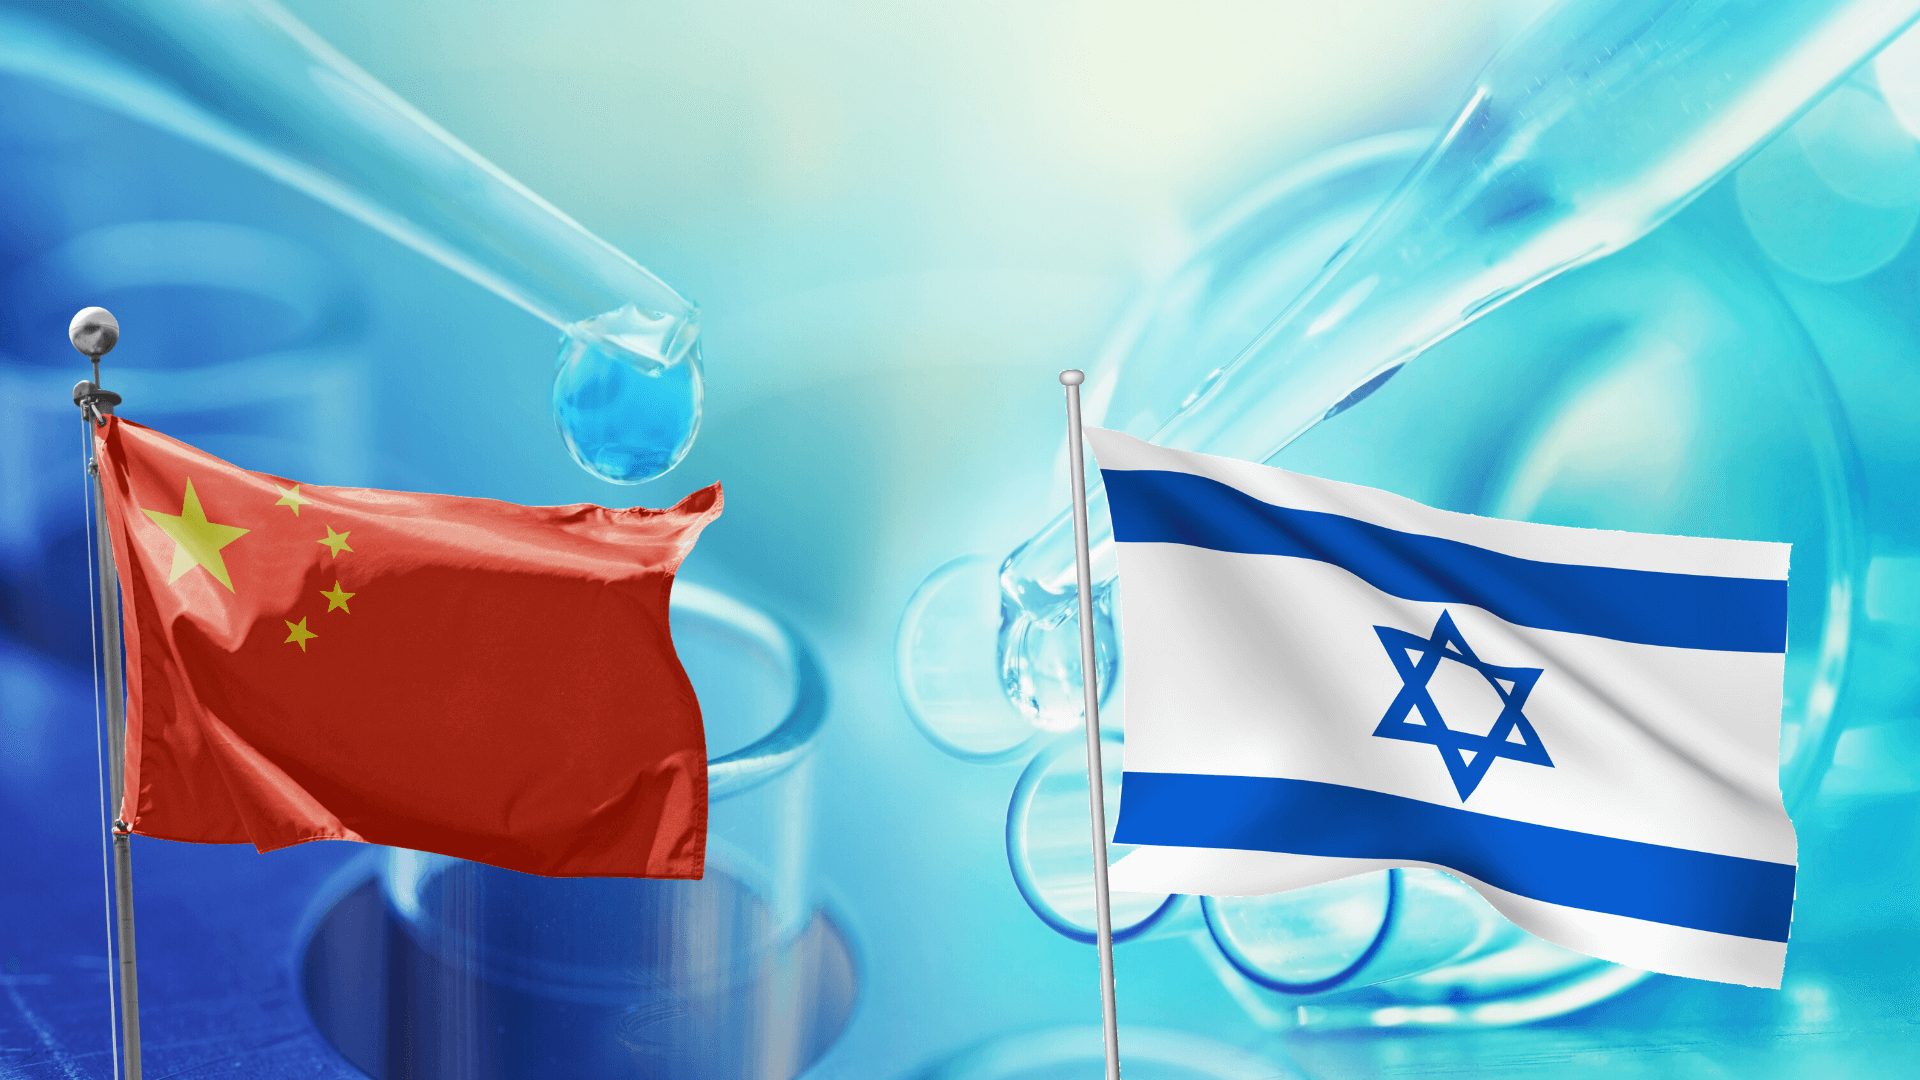 China-Israel Innovation Hub Aims to Promote Scientific and Technological Research